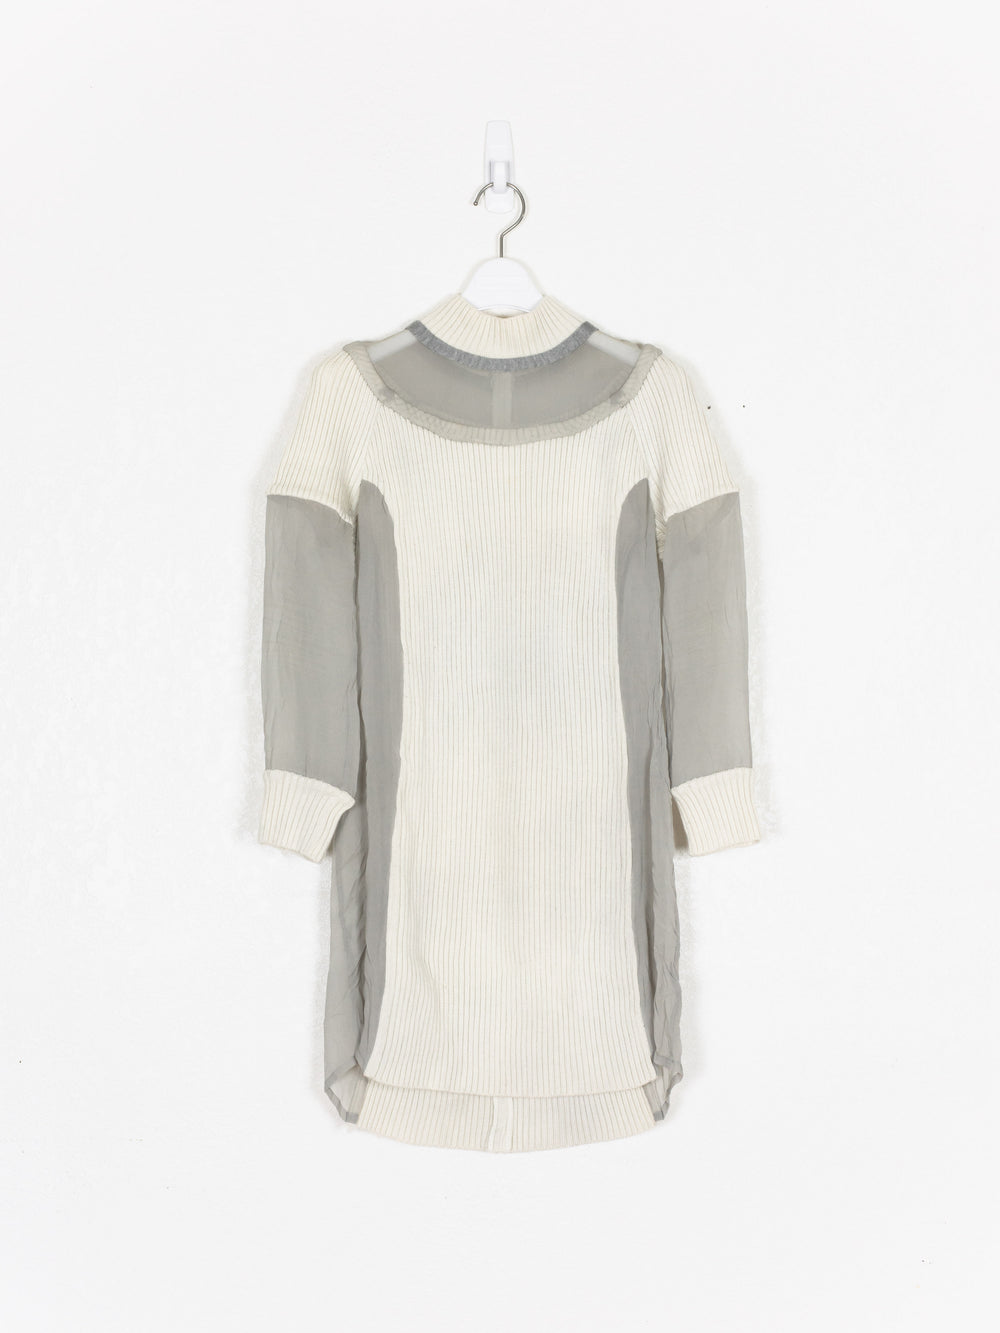 Undercover AW07 Wool Knit & Silk Paneled Mock Neck Dress